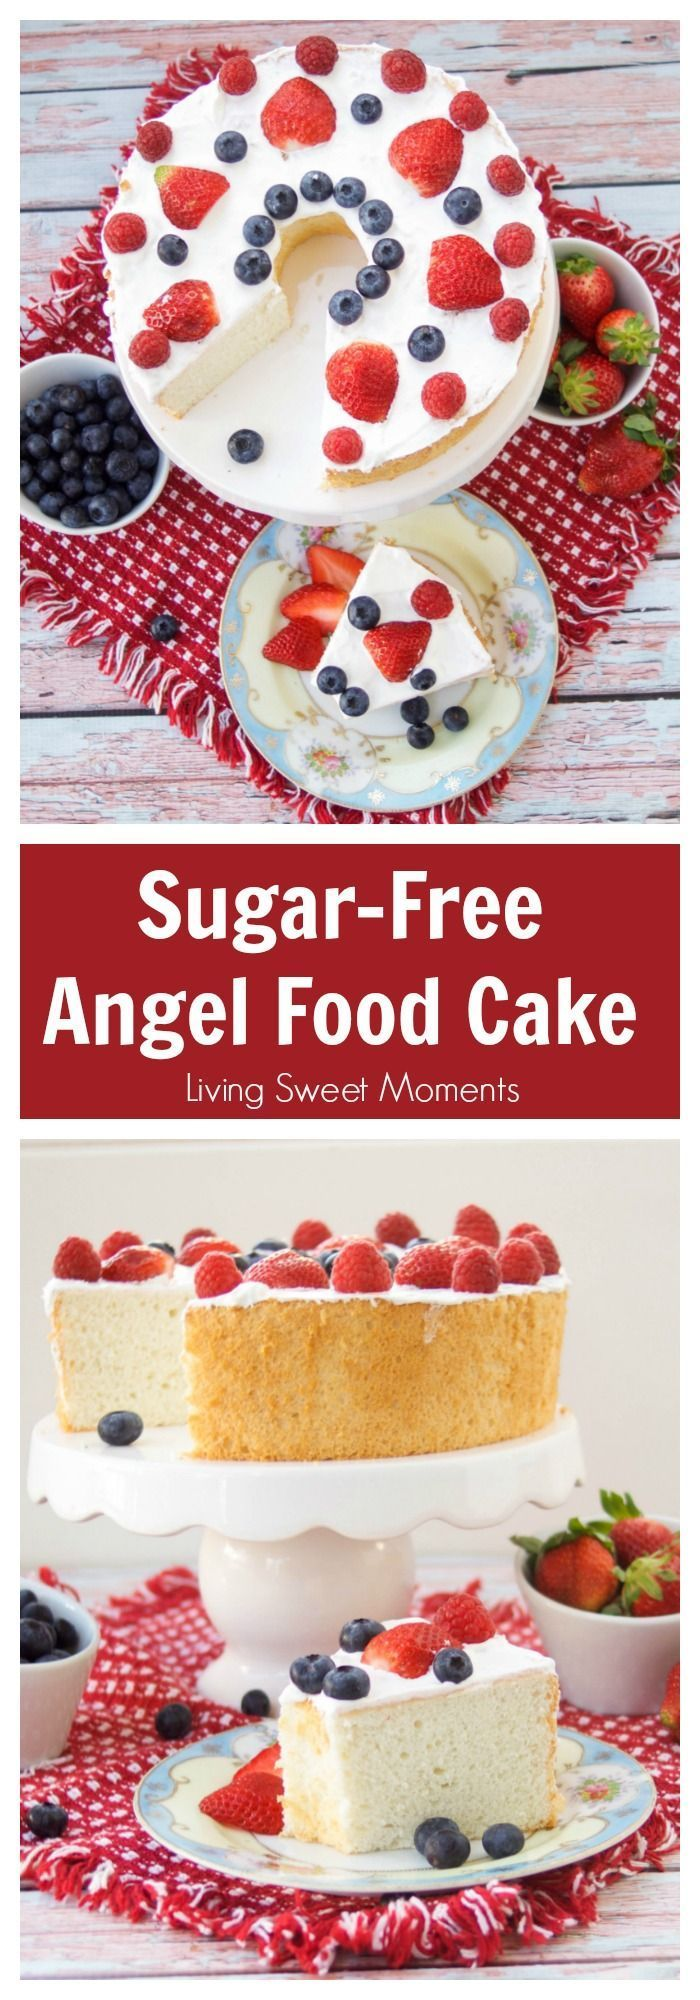 Sugar free angel food cake receta sin azcar azcar y postres this delicious sugar free angel food cake recipe is super easy to make low carb forumfinder Image collections